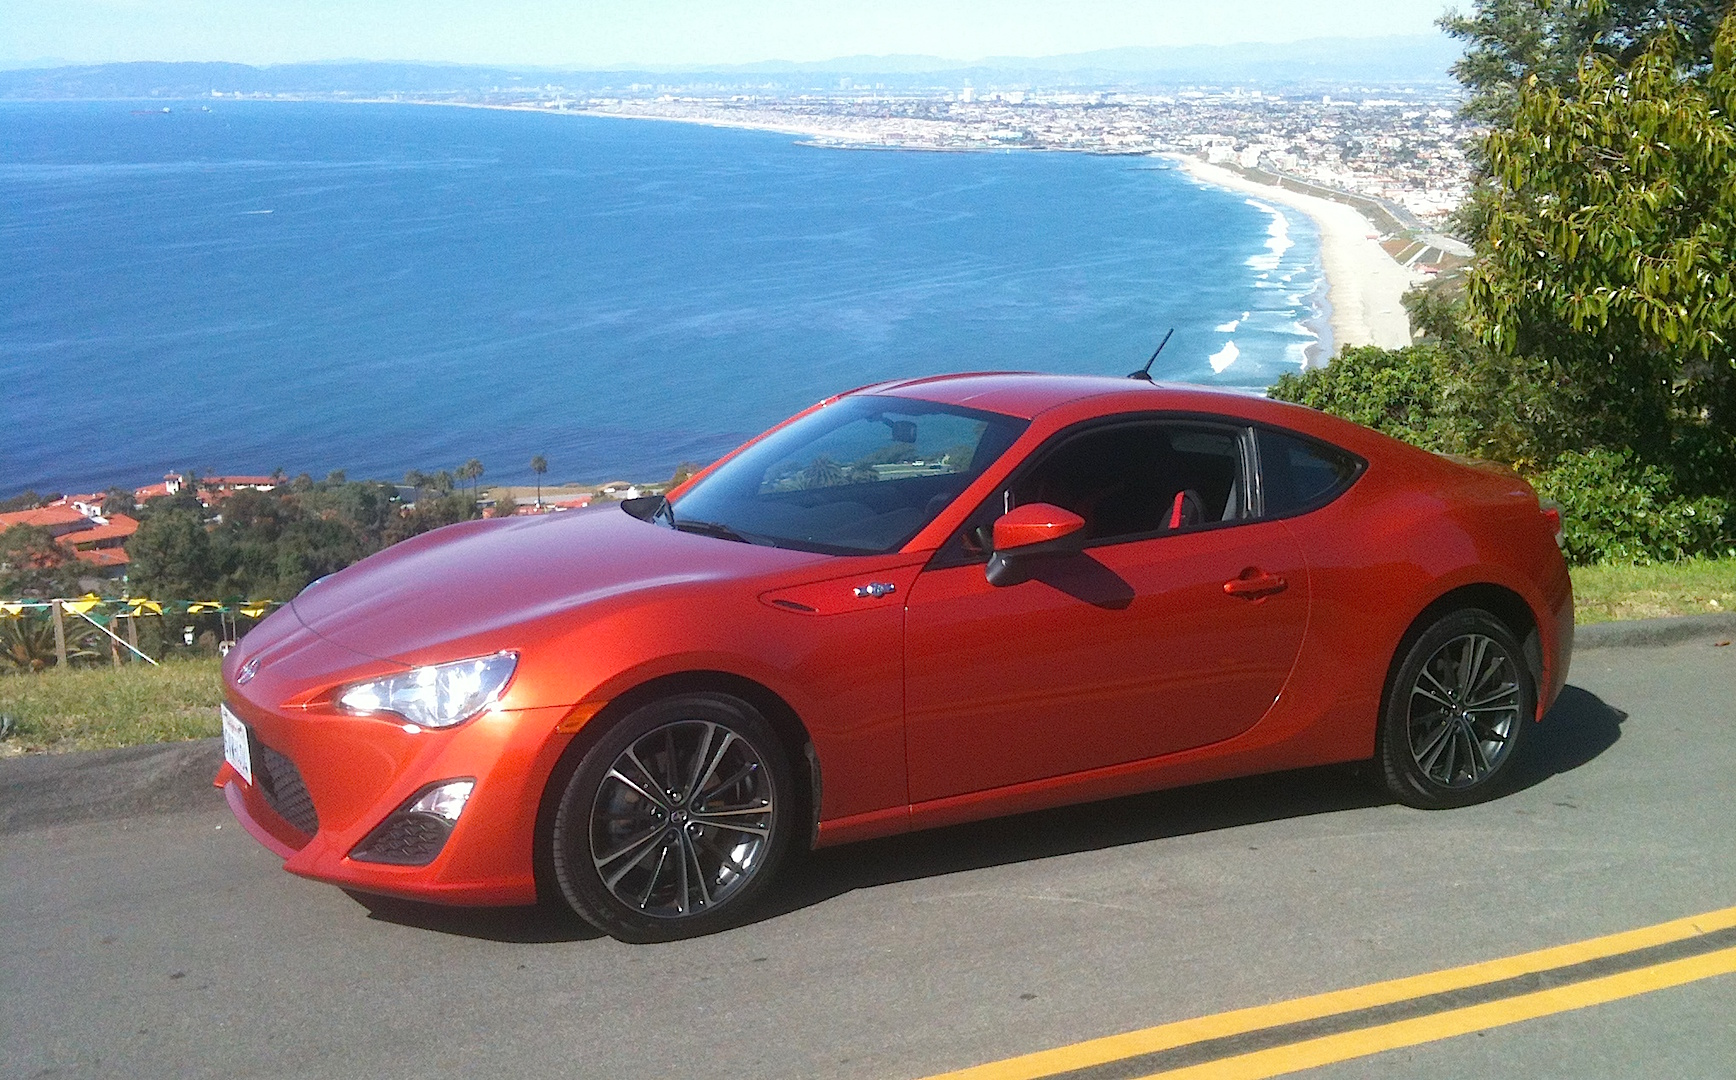 2013 scion fr s review new coupe celebrates the joy of driving carnichiwa. Black Bedroom Furniture Sets. Home Design Ideas